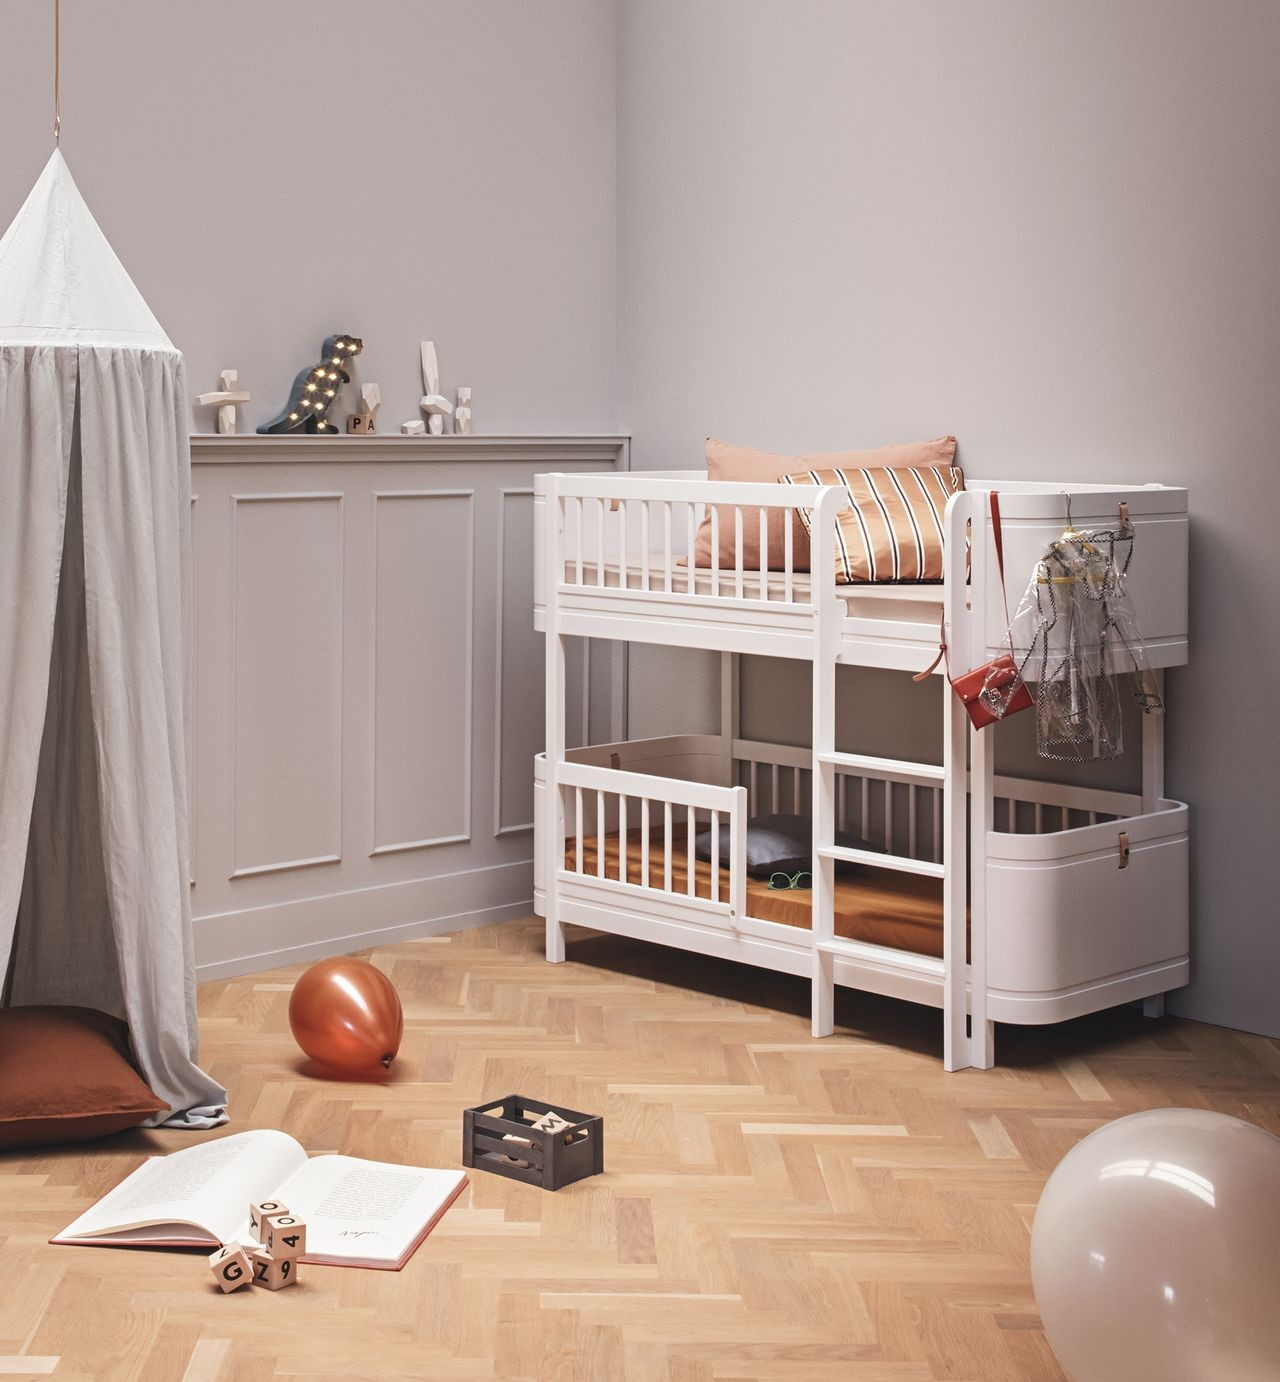 Oliver Furniture Wood Mini+ halbhohes Etagenbett kaufen - Kleine Fabriek